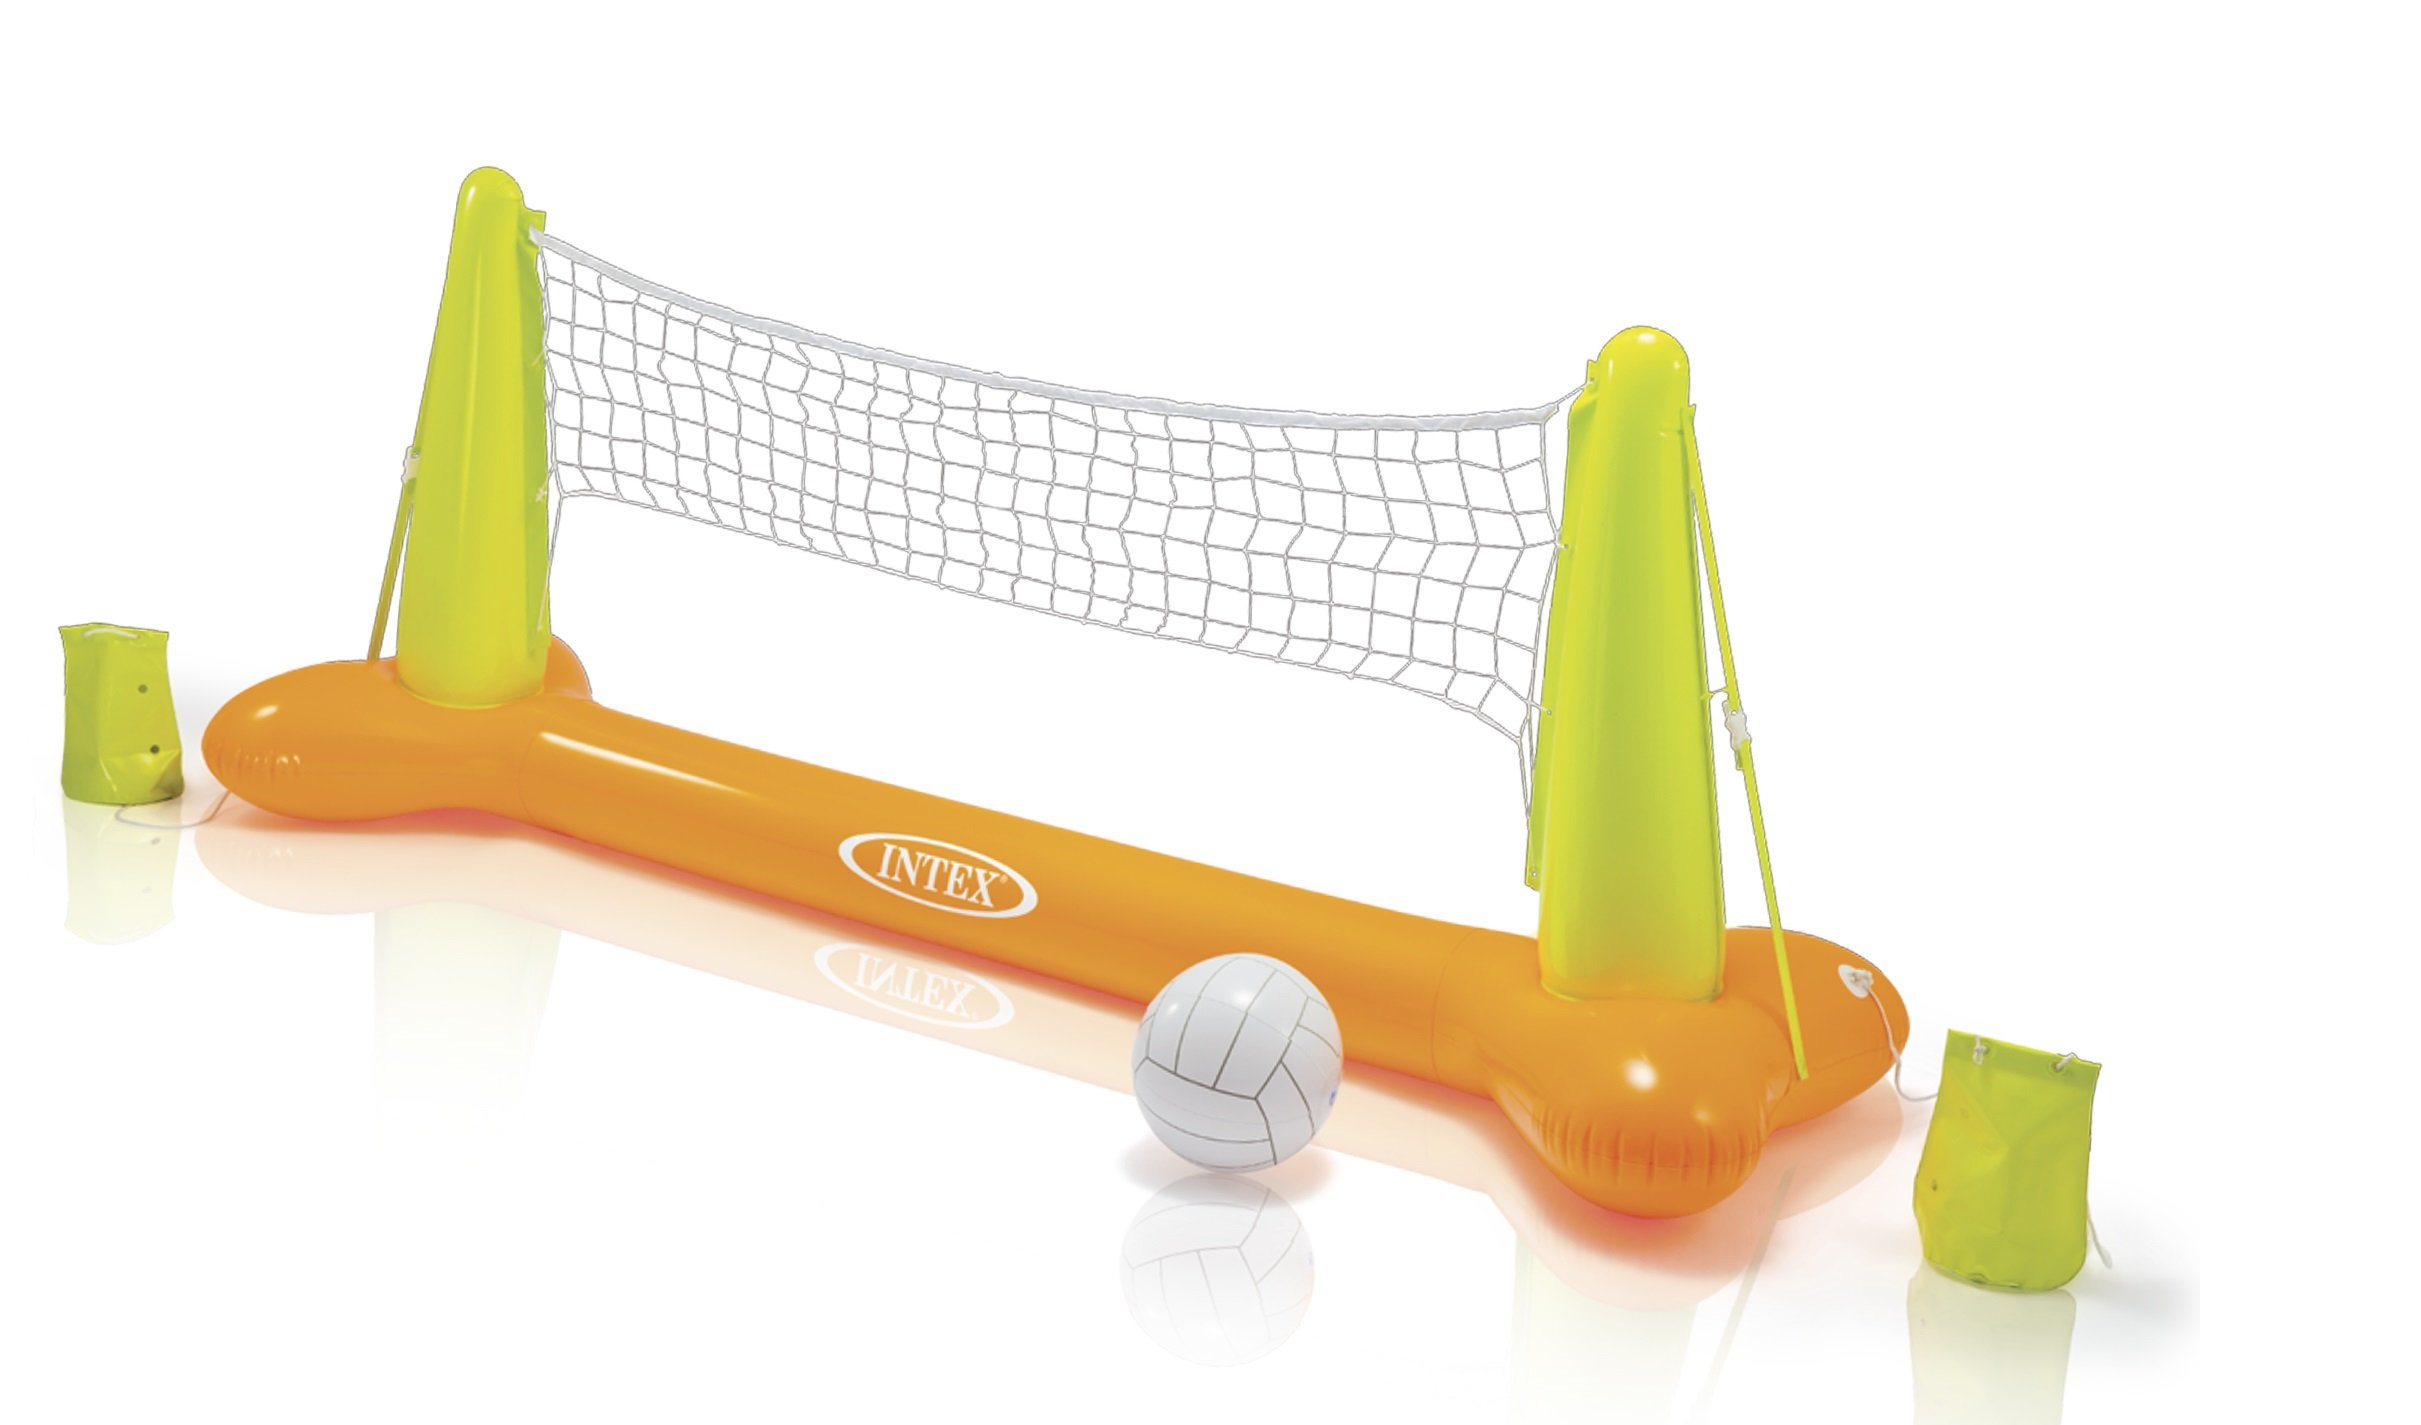 Intex Pool Volleyball Game, 94'' X 25'' X 36'', for Ages 6+